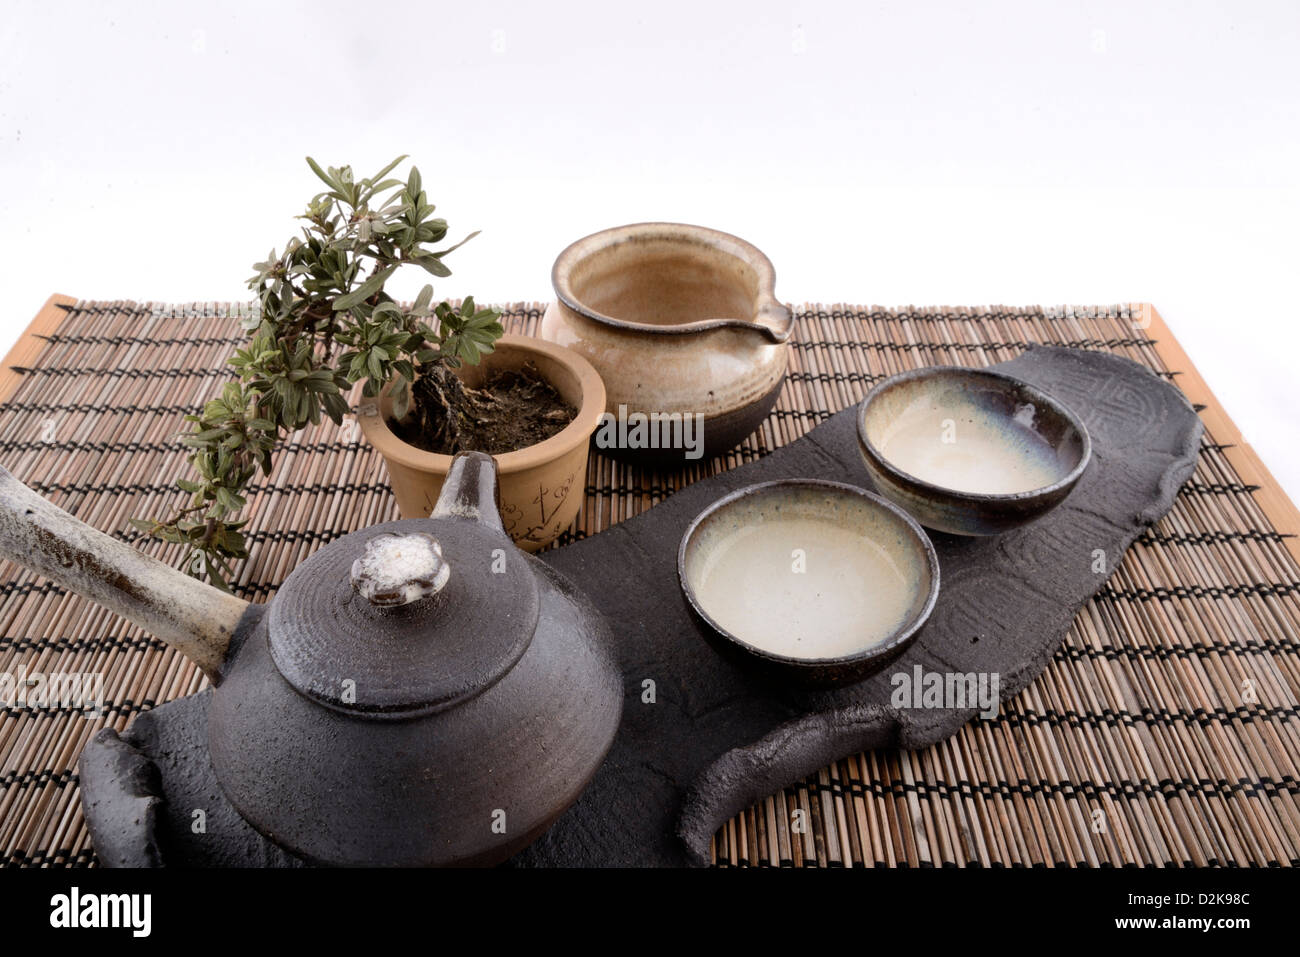 Product image of traditional Chinese tea set on a table setting with white seamless background. & Product image of traditional Chinese tea set on a table setting with ...